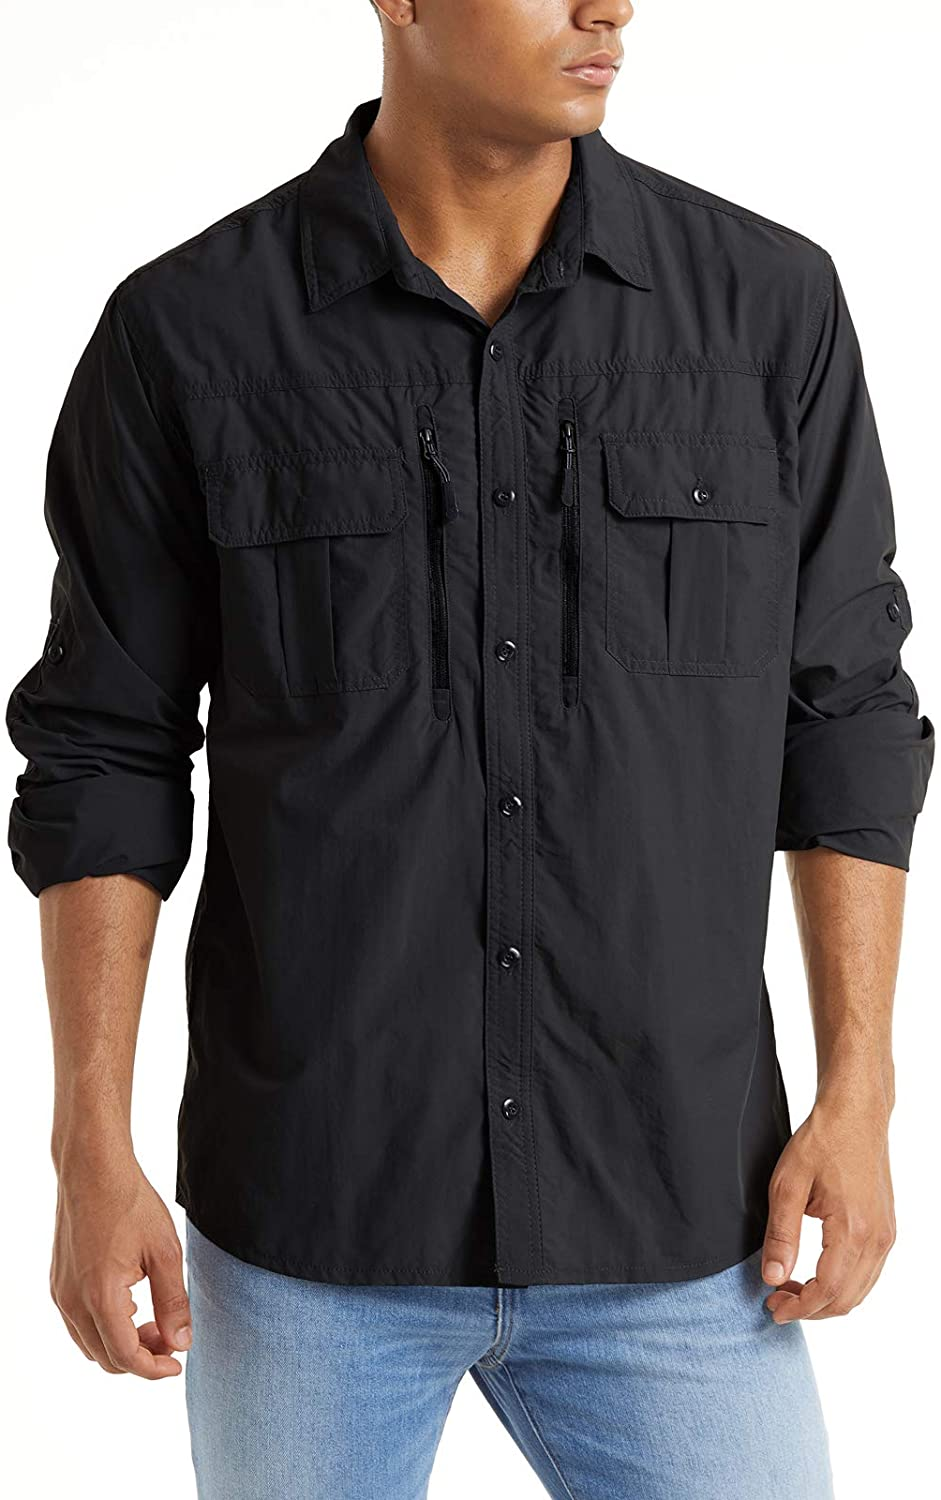 TACVASEN Men's sold out Tactical Department store Shirts Quick UV Breathabl Protection Dry